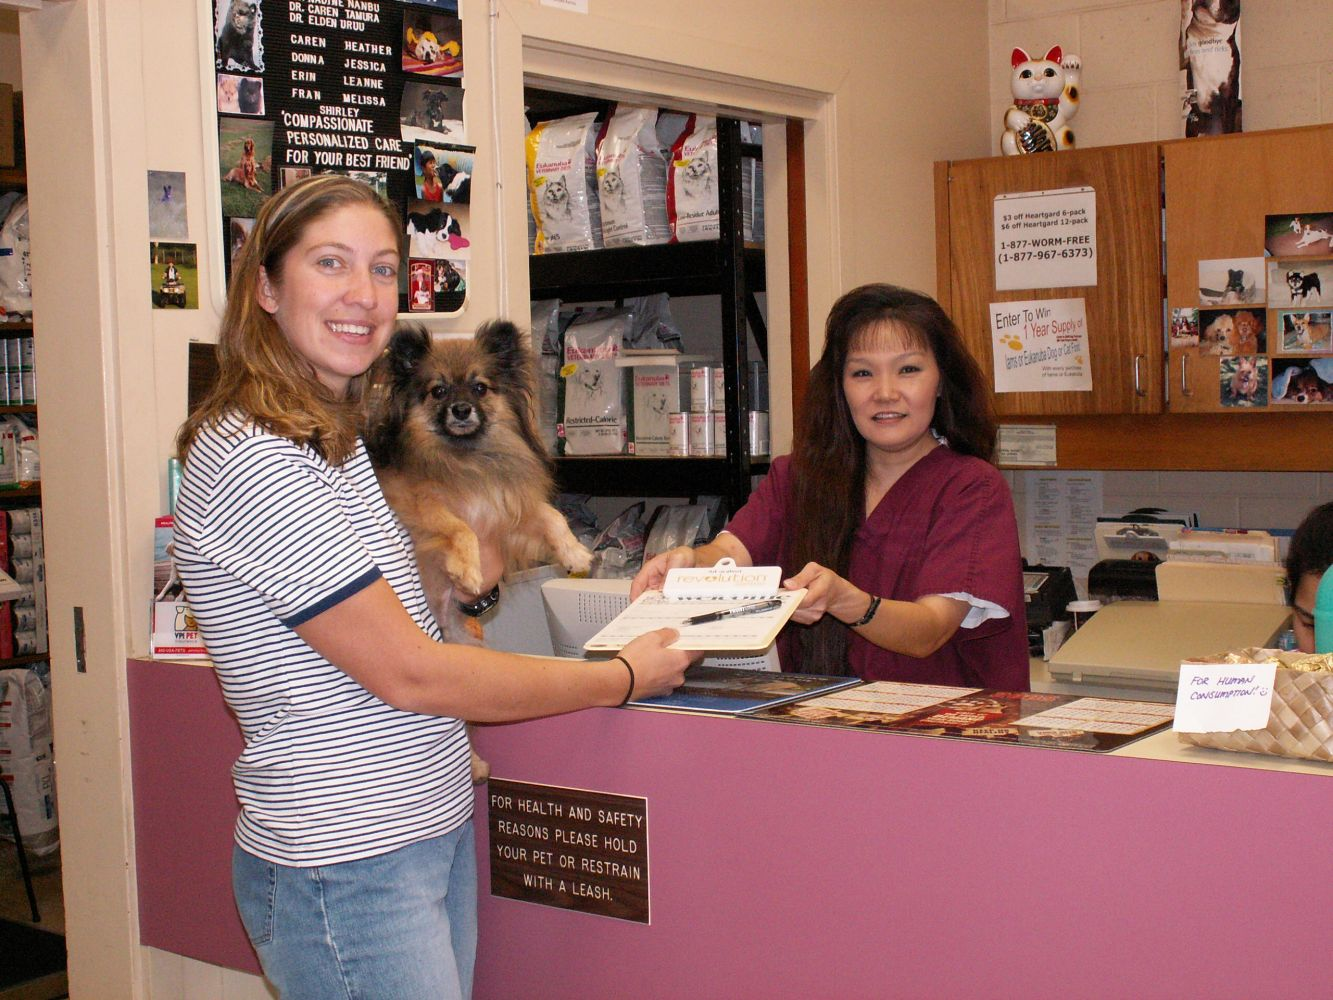 A dog and its owner at the front desk of our clinic